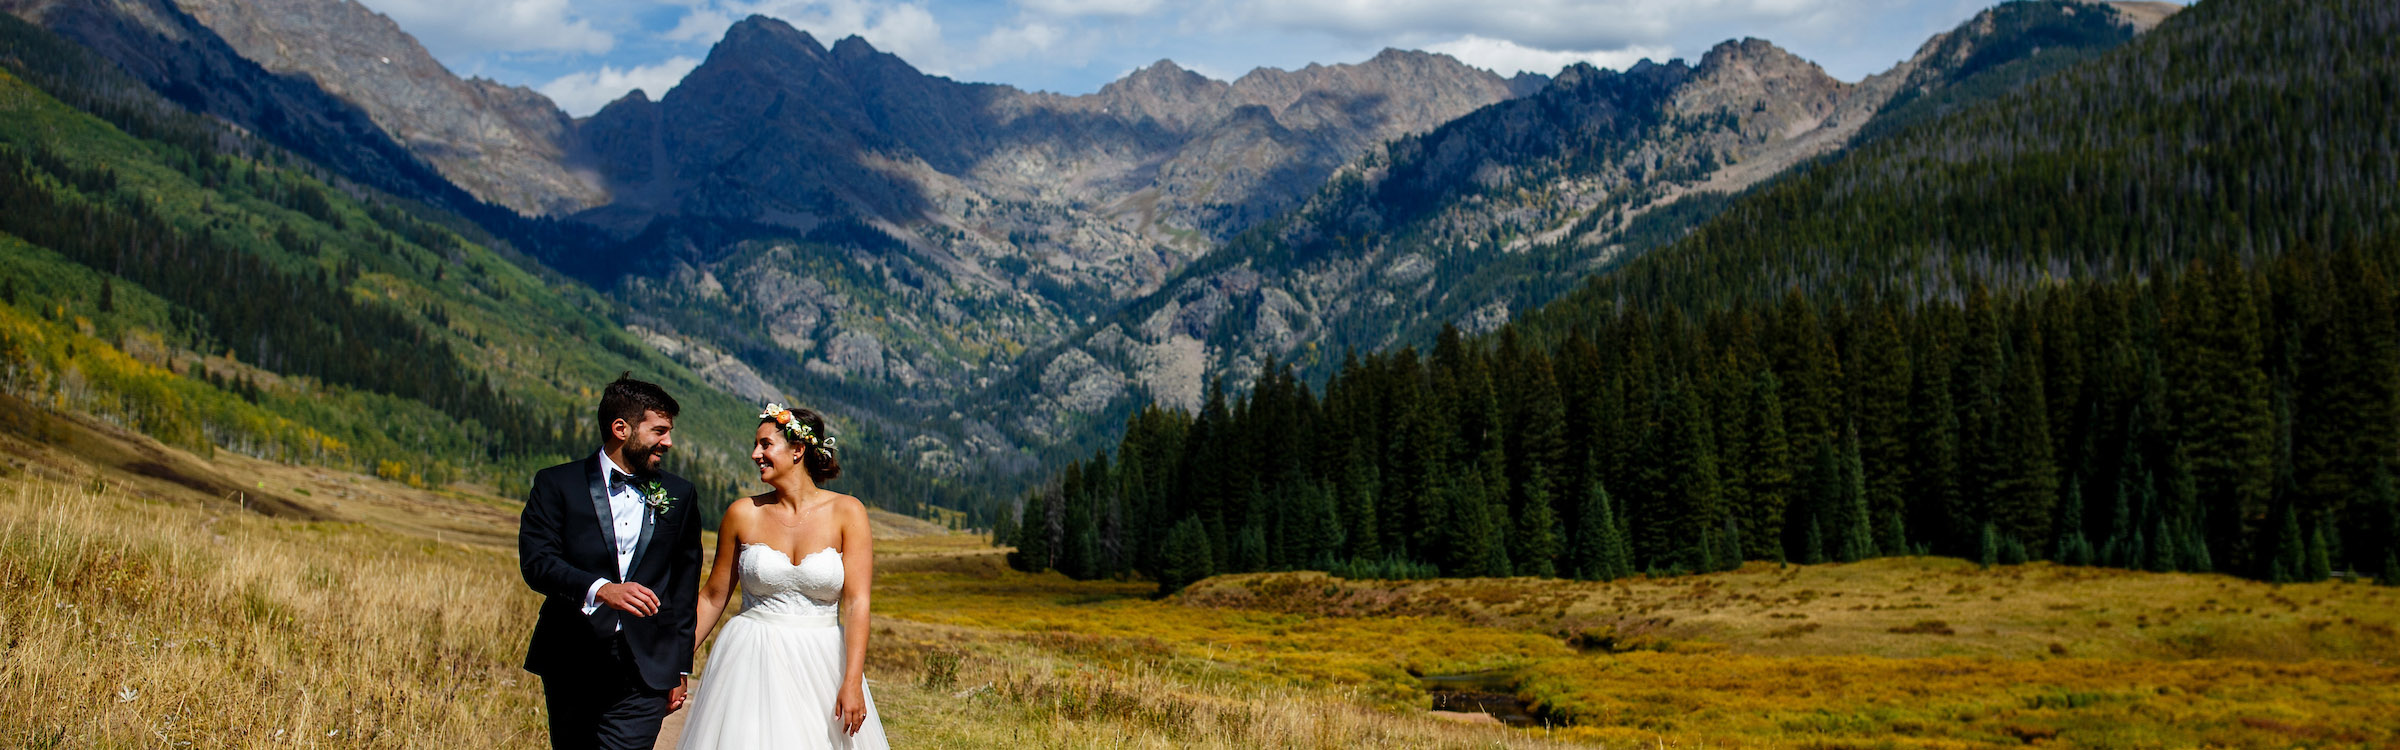 Piney River Ranch Wedding planner, colorado wedding planner, vail wedding planner, beaver creek wedding planner, mountain wedding colorado